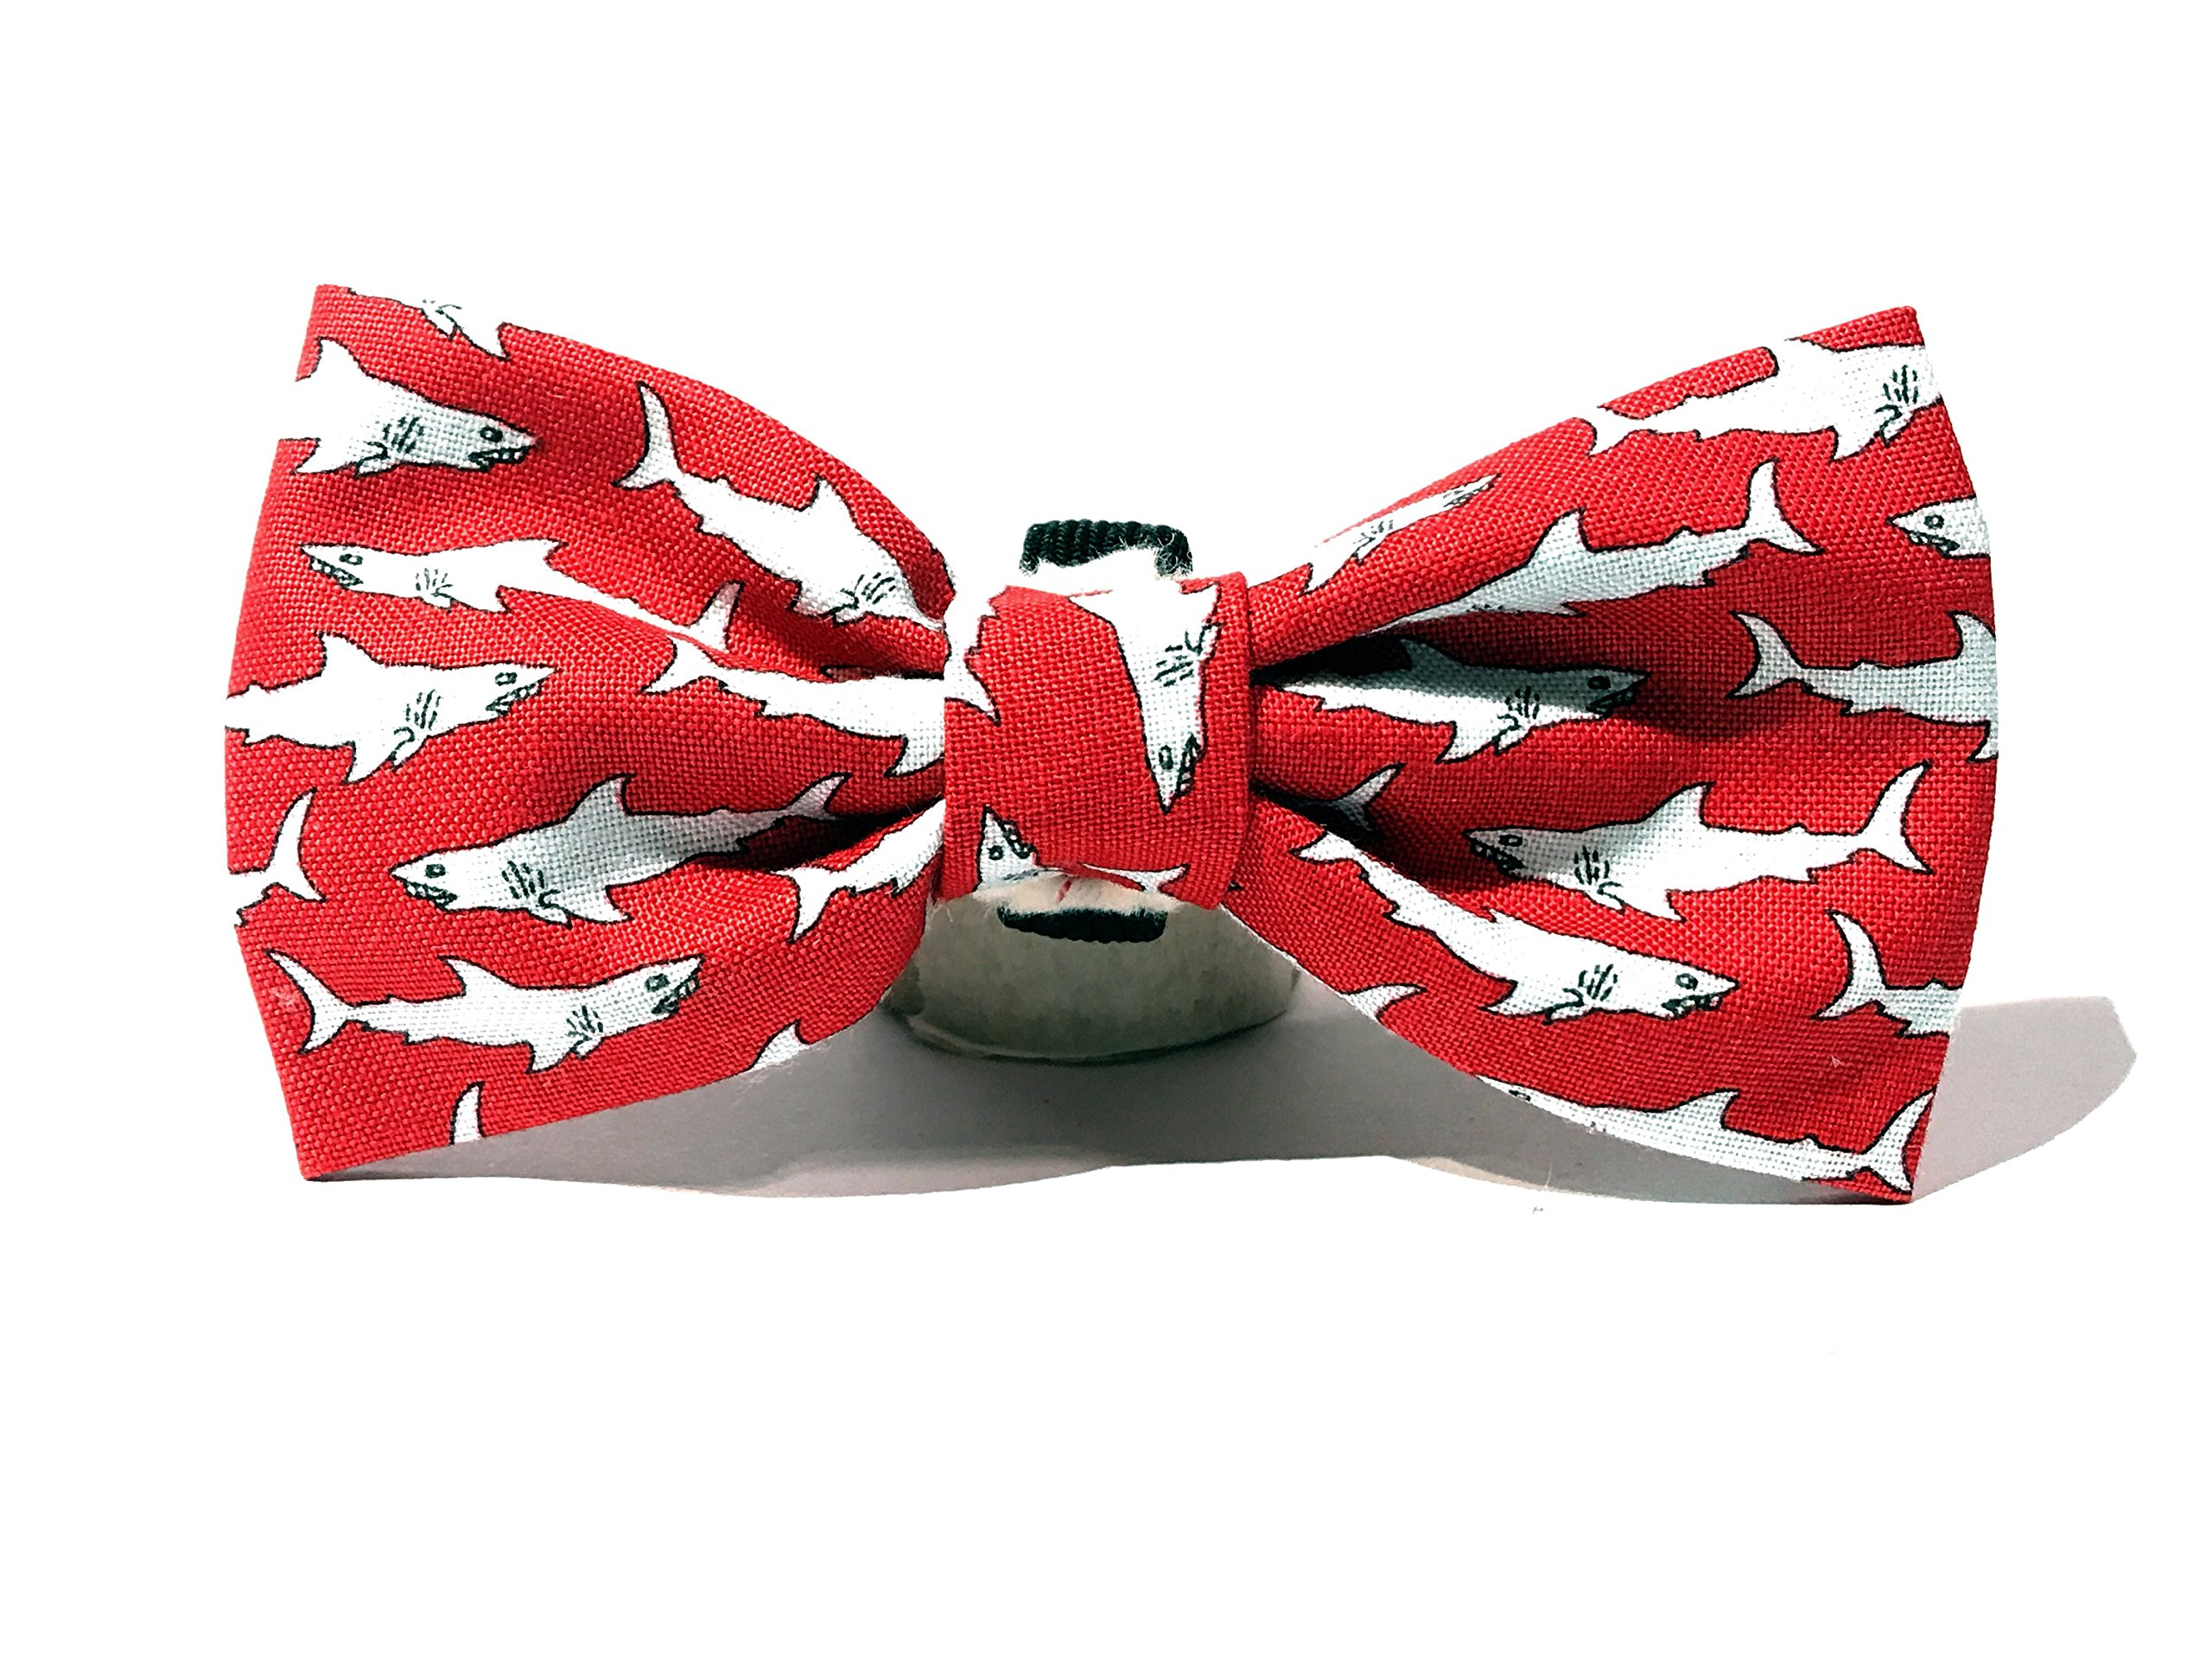 Very Vintage Design Dog Cat Collar Bow Tie Shark Attack Red Gray Sharks Ocean Beach Mar Hand Crafted Collection Organic Cotton Personalized Adjustable Pet Floral Bowtie